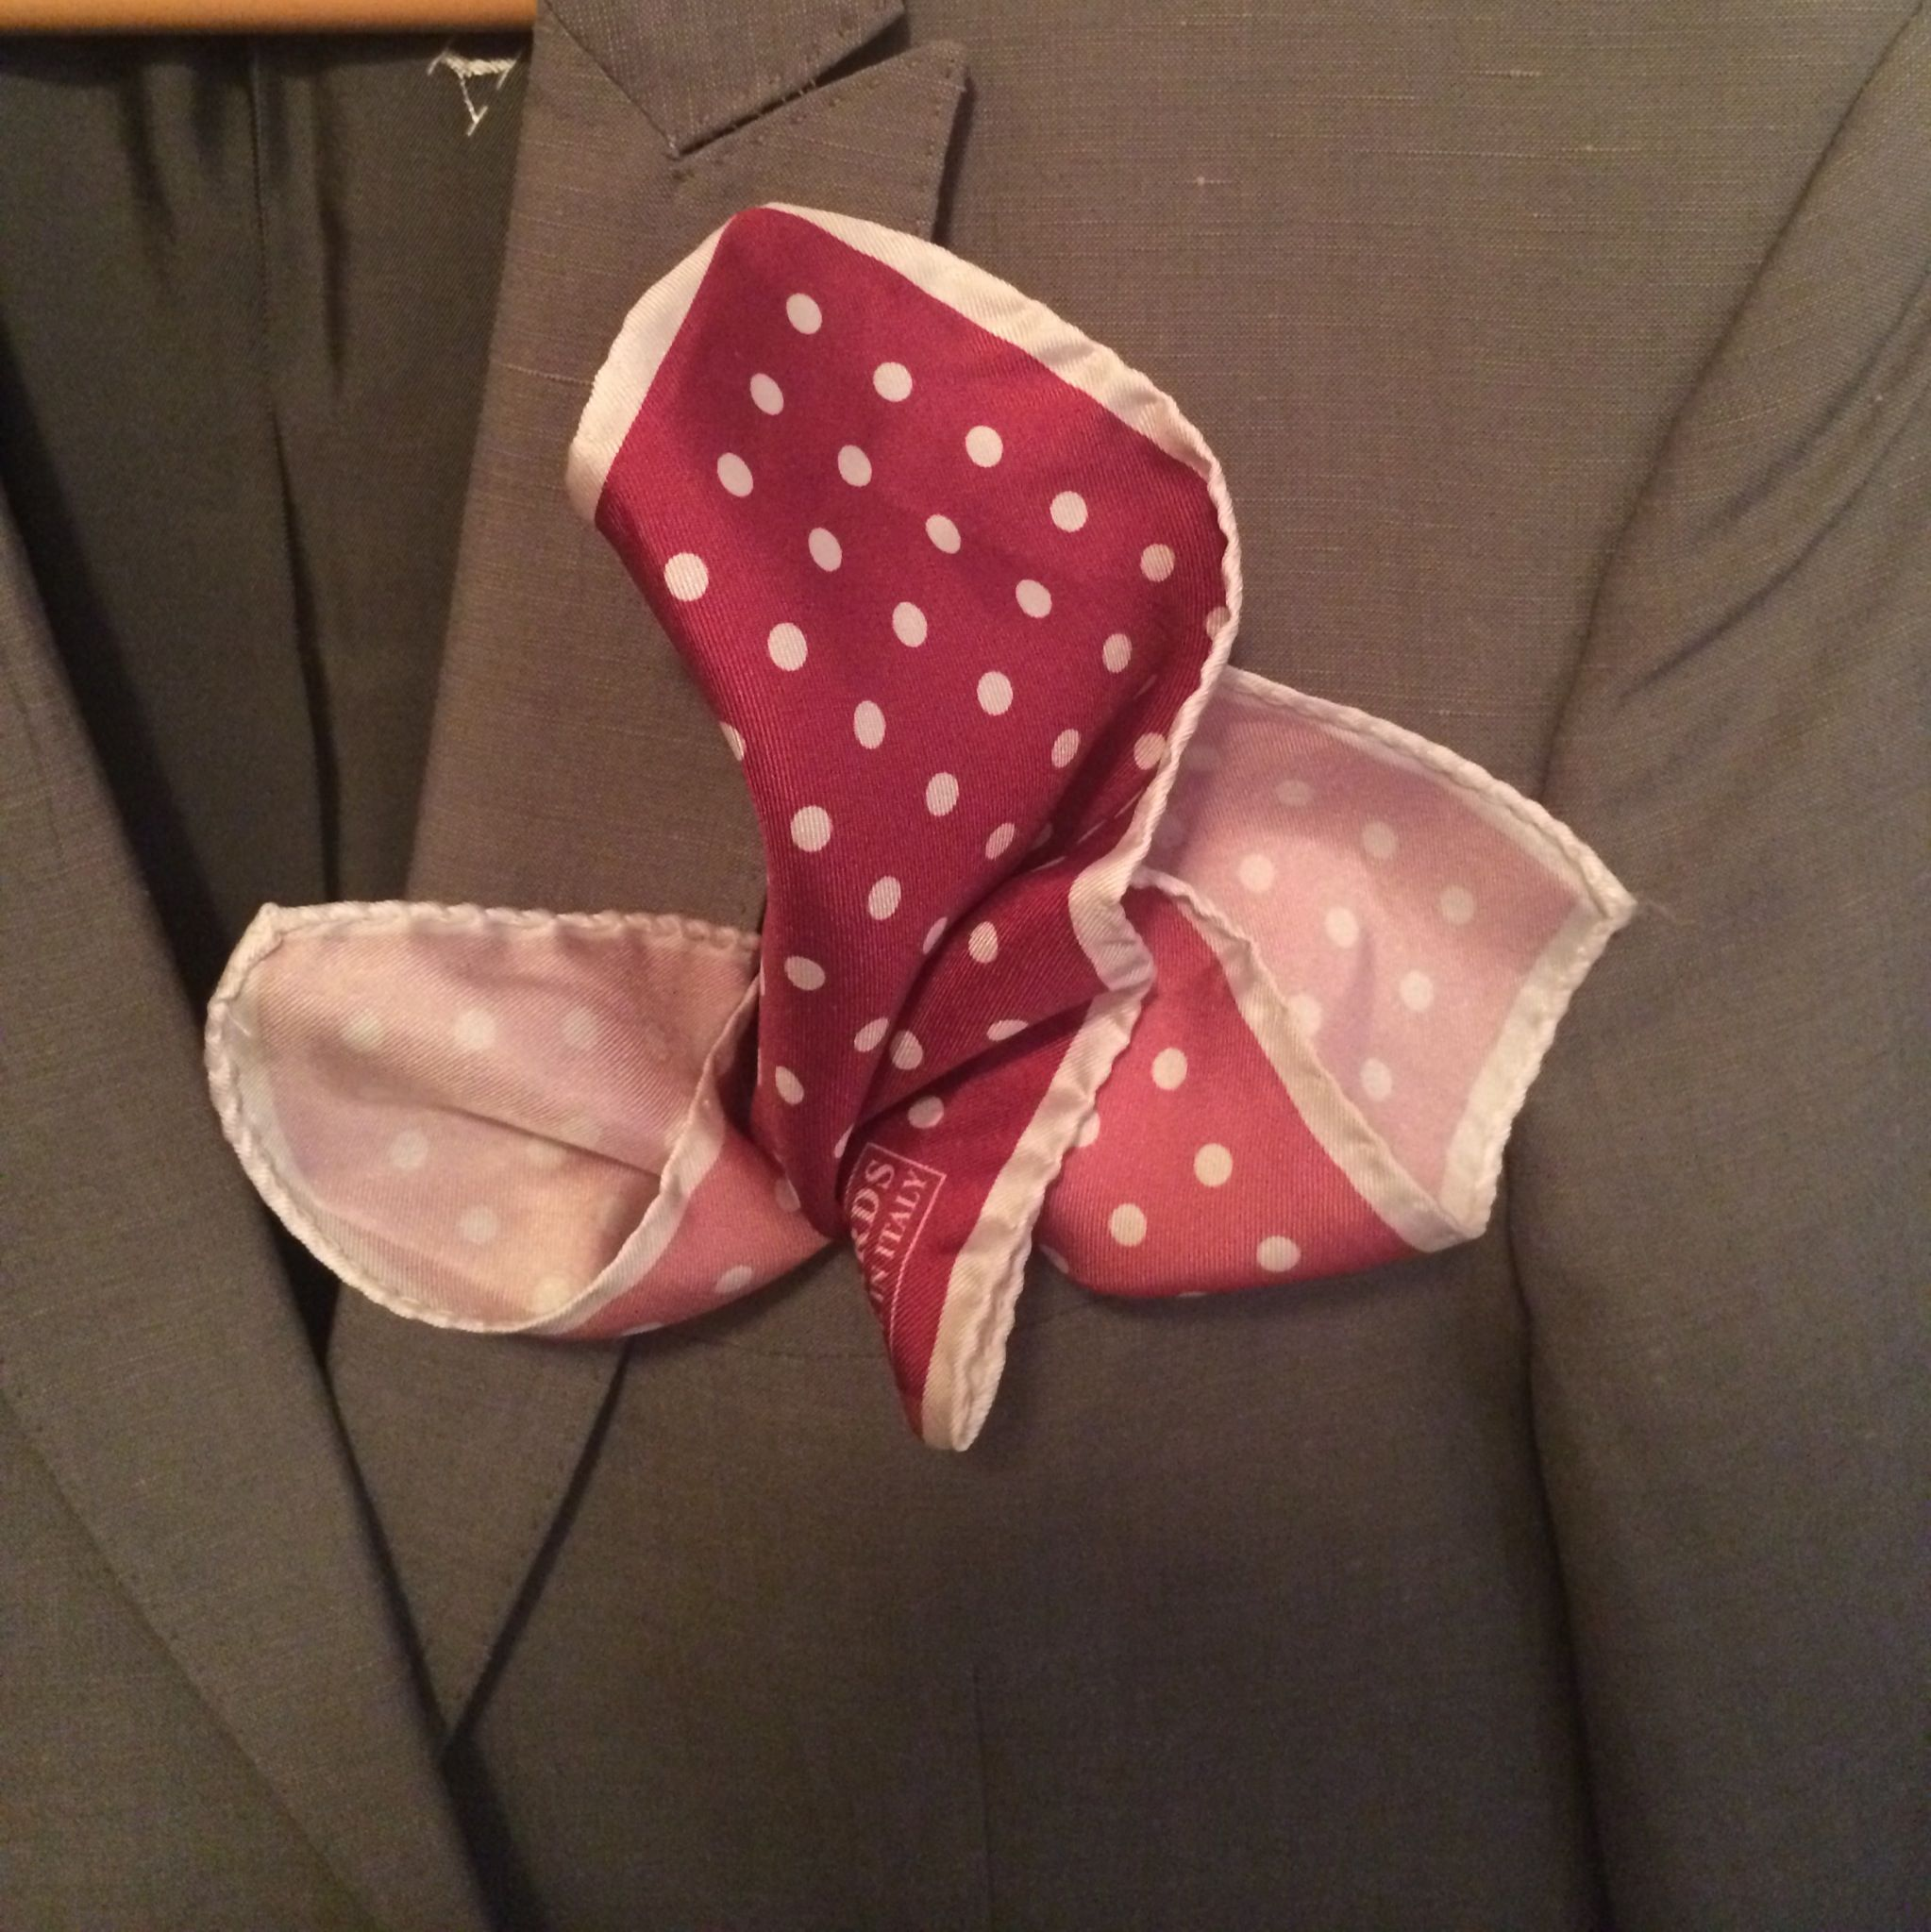 4 in 1 Handkerchief/Pocket Square Nordstrom Pick for my client...